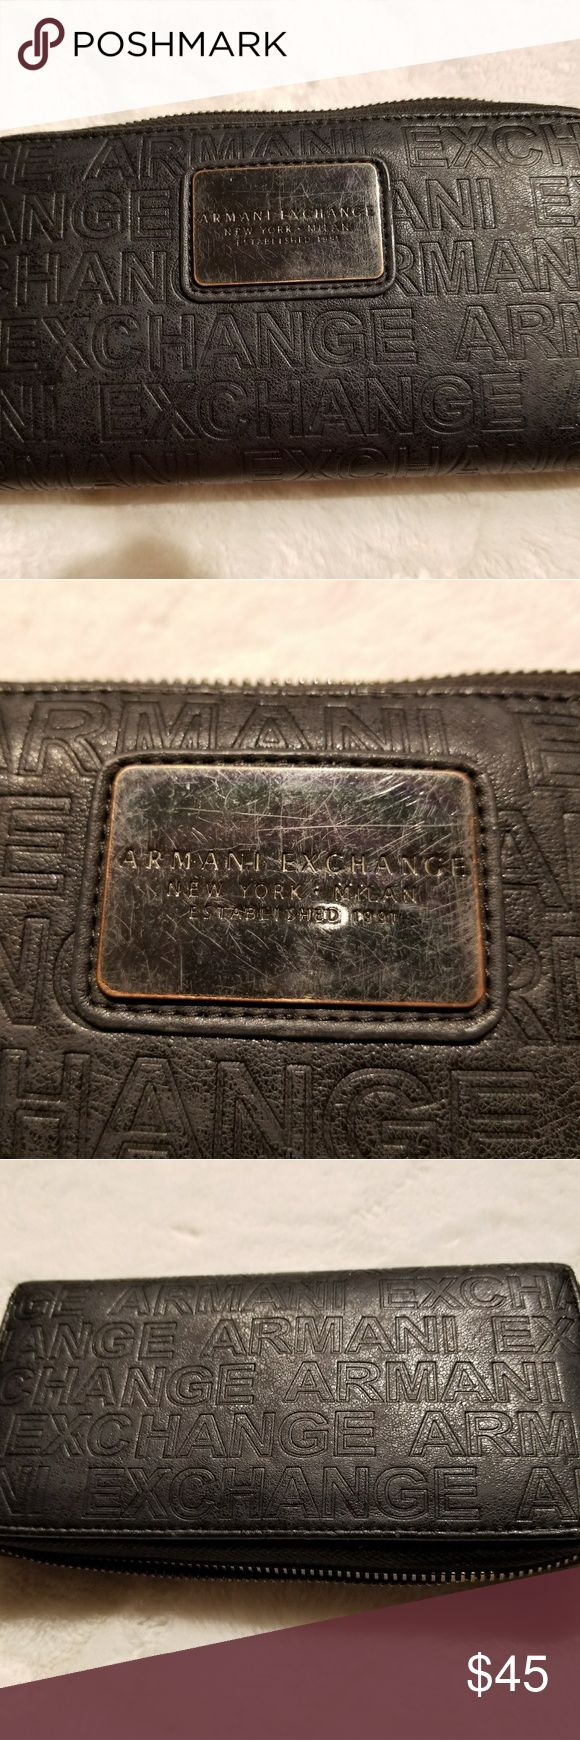 AE Black wallet Used it pretty often. Metal is scratched. But no other damage to it. Many layers, pretty comfortable. Give me BO Armani Exchange Bags Wallets